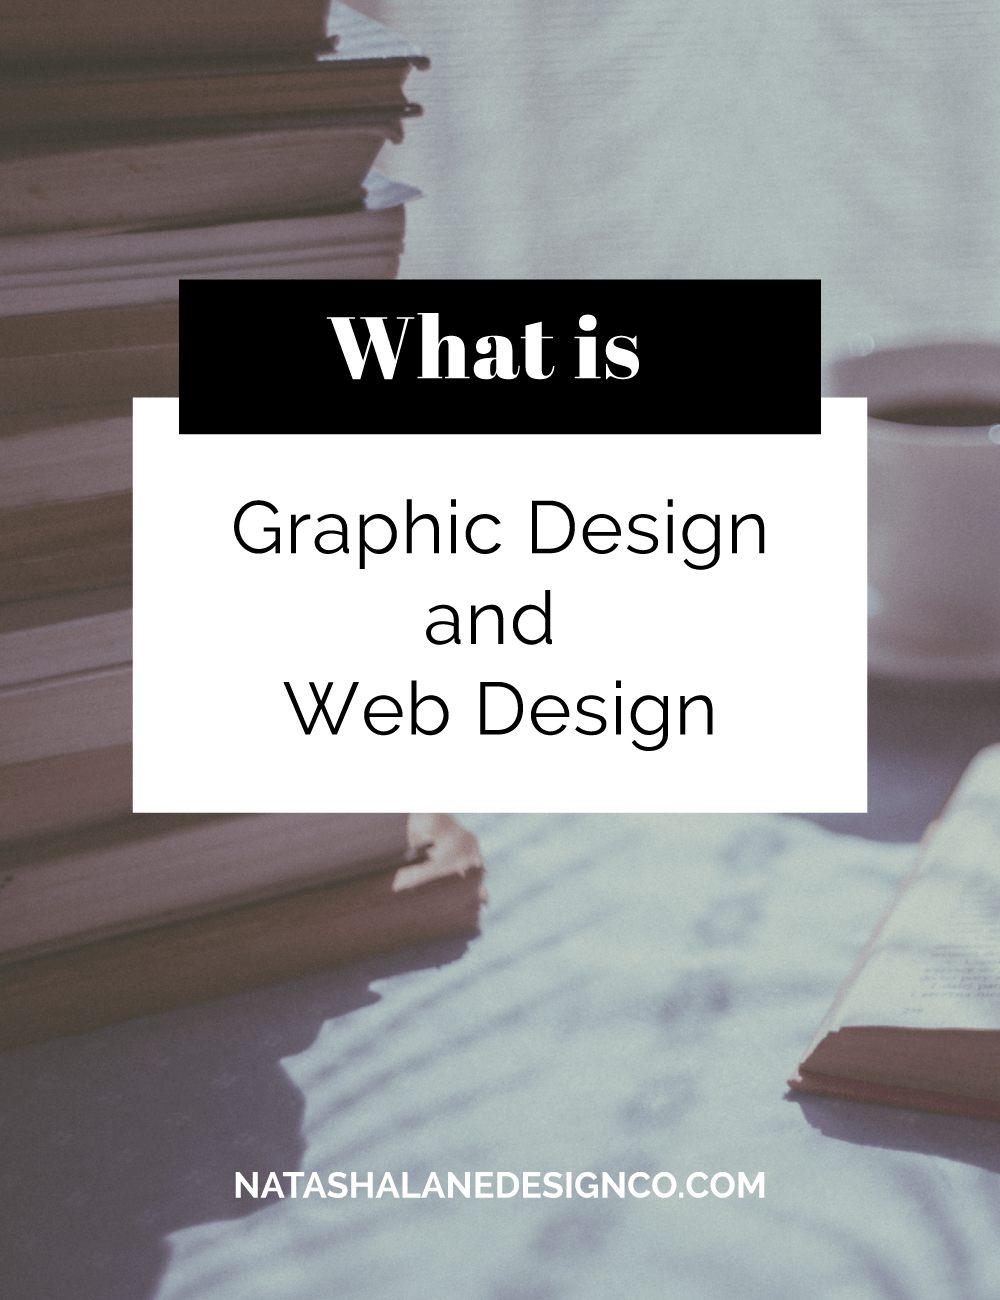 What is Graphic Design and Web Design?